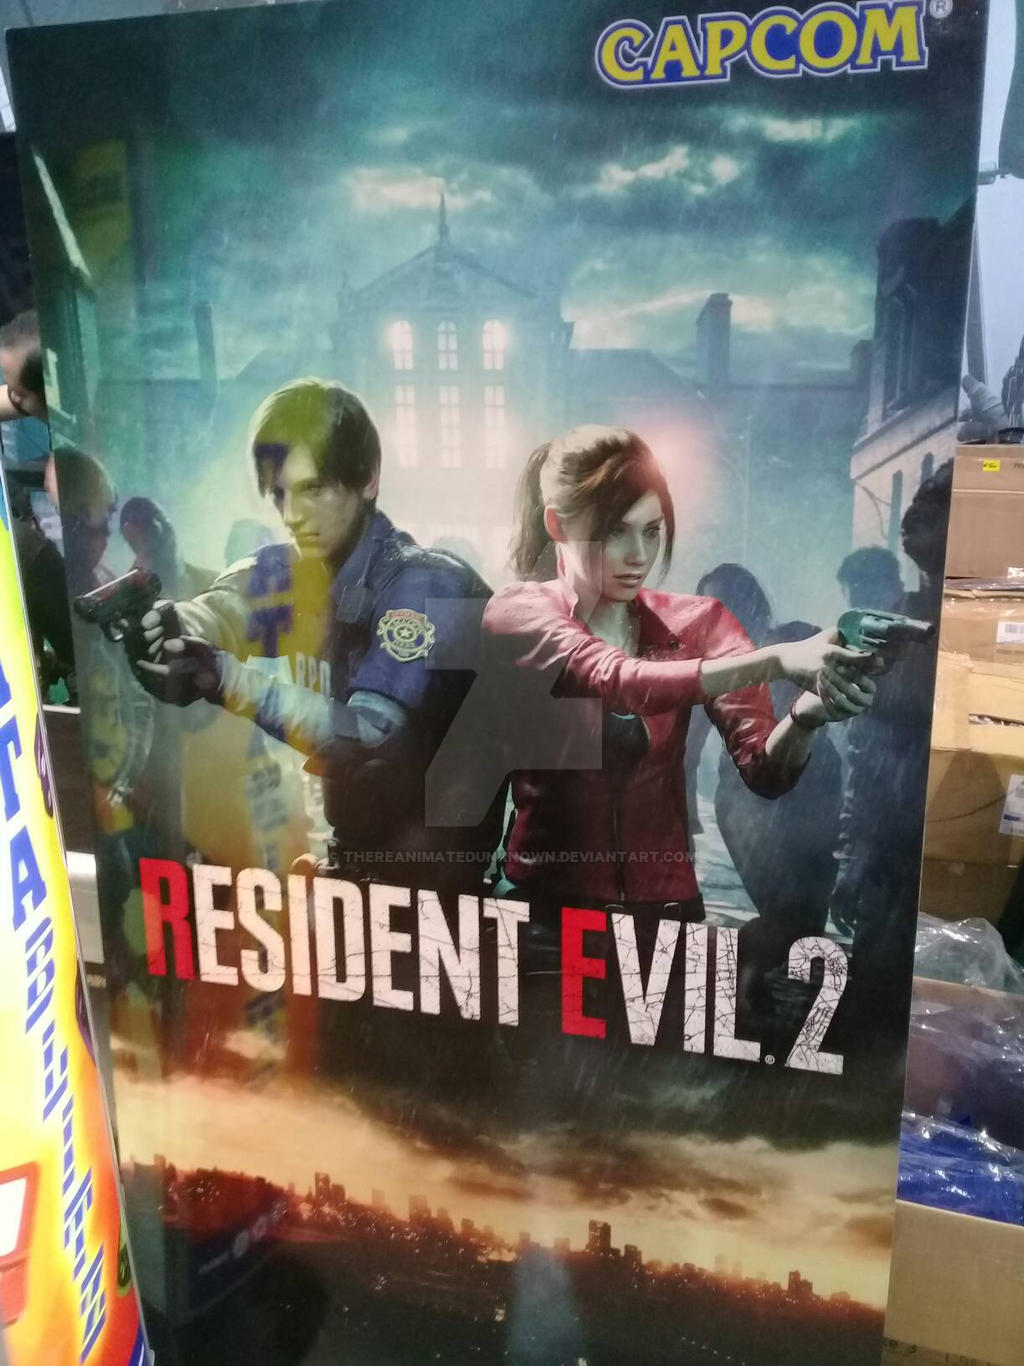 Resident Evil 2 Remake Poster Standee By Thereanimatedunknown On Deviantart